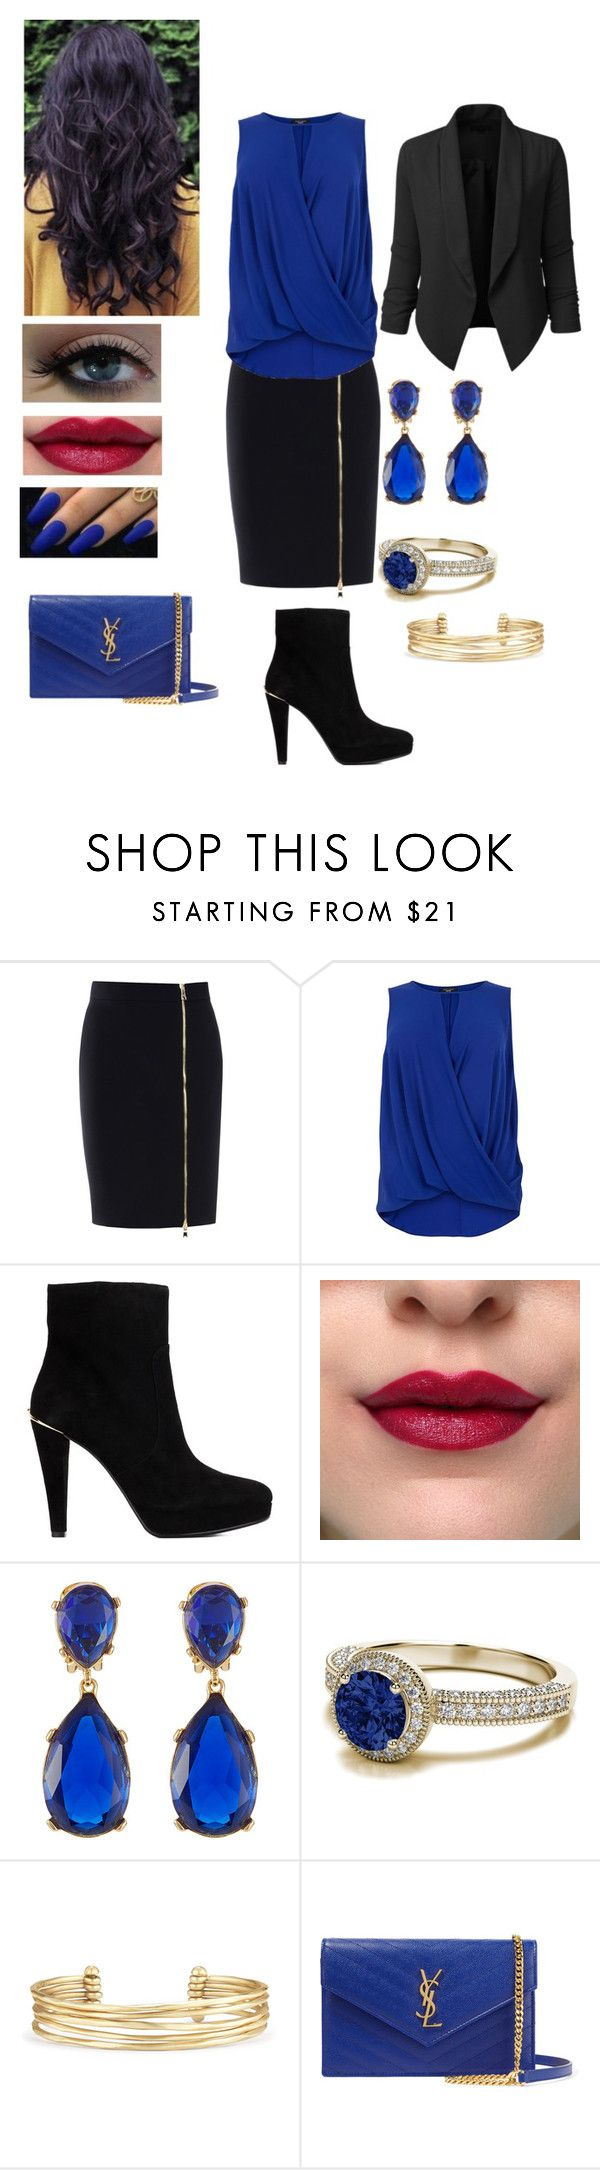 """""""It's all about Business"""" by jujuxx33 ❤ liked on Polyvore featuring Boutique Moschino, MICHAEL Michael Kors, Kenneth Jay Lane, Stella & Dot, Yves Saint Laurent and LE3NO"""